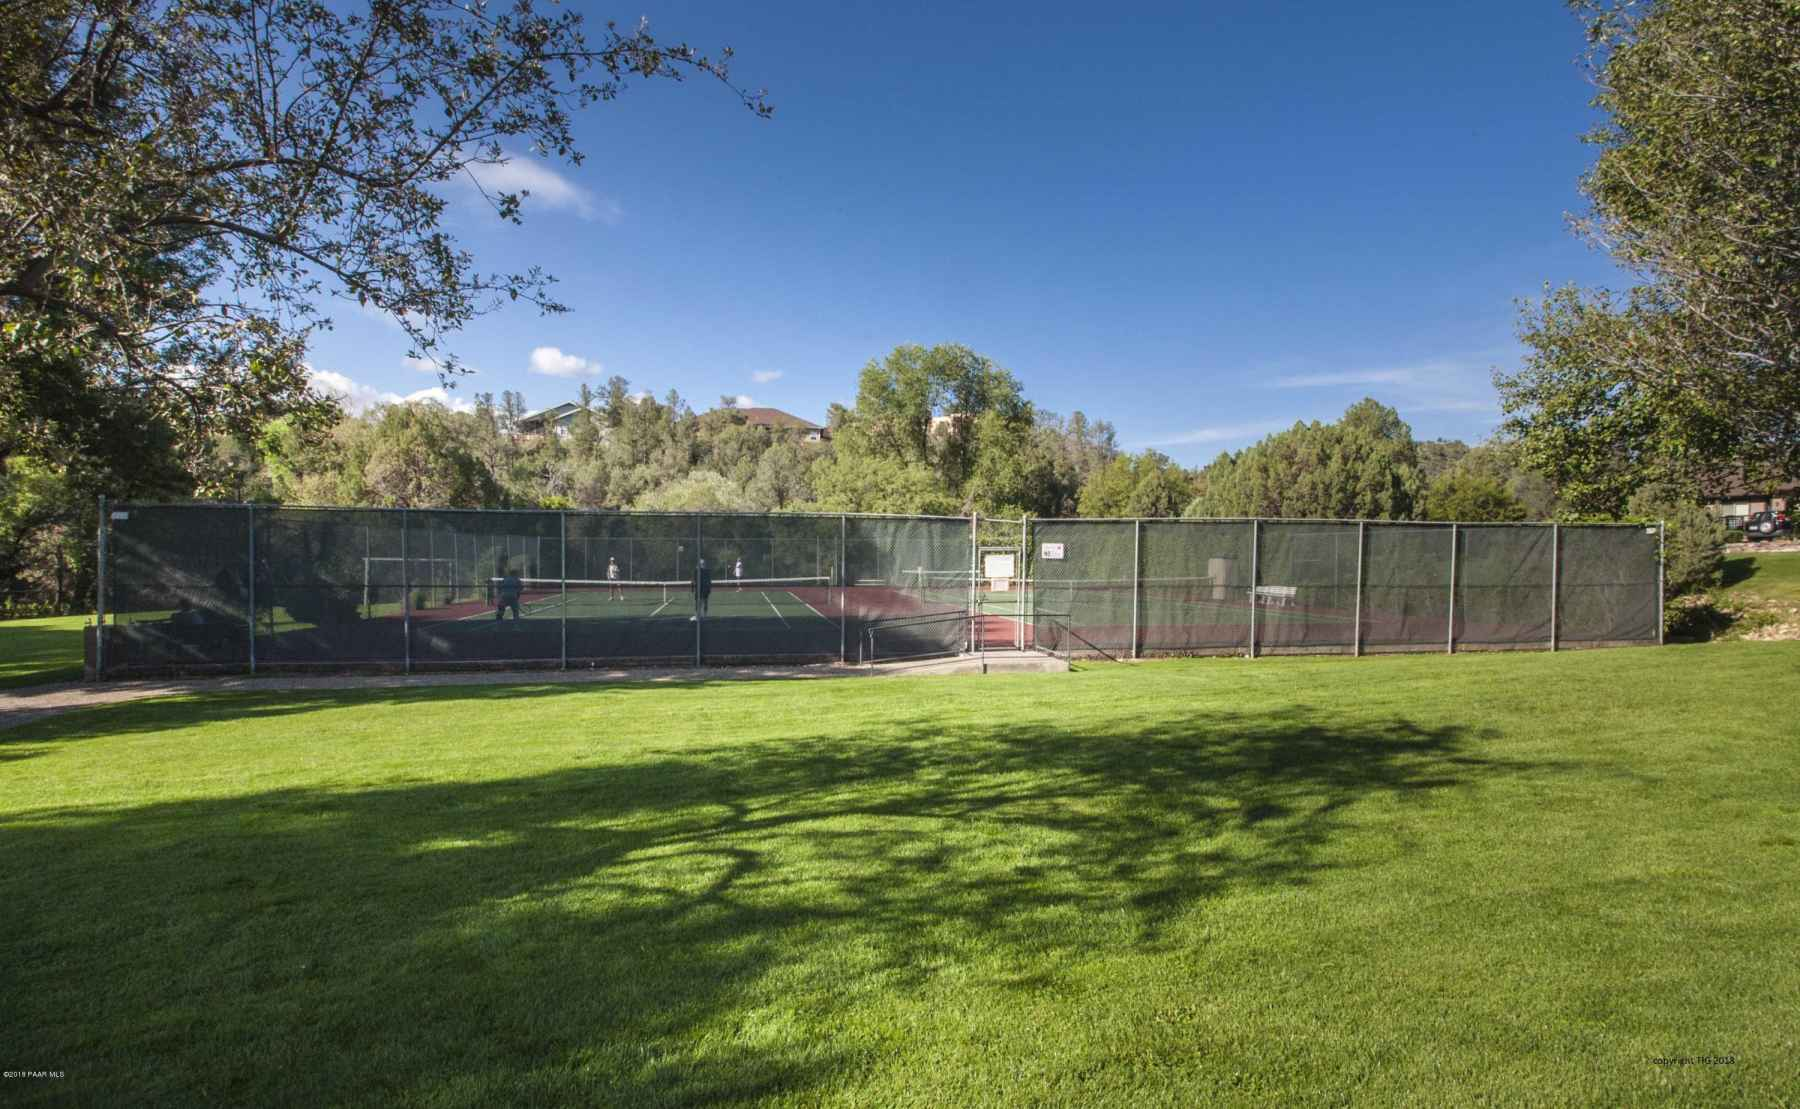 Clubhouse Tennis Courts - copyright